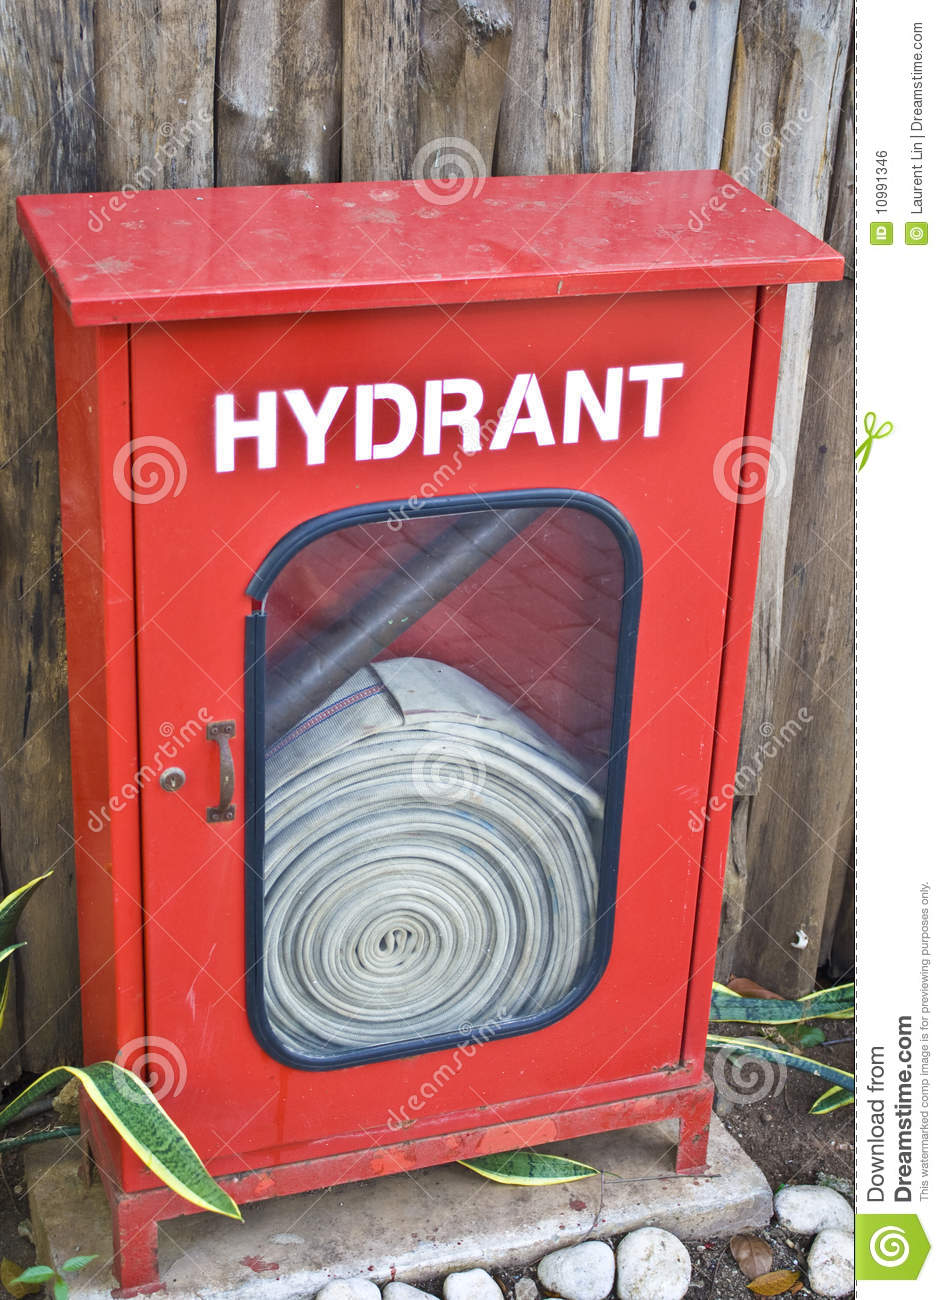 Fire Hydrant Box Royalty Free Stock Image - Image: 10991346